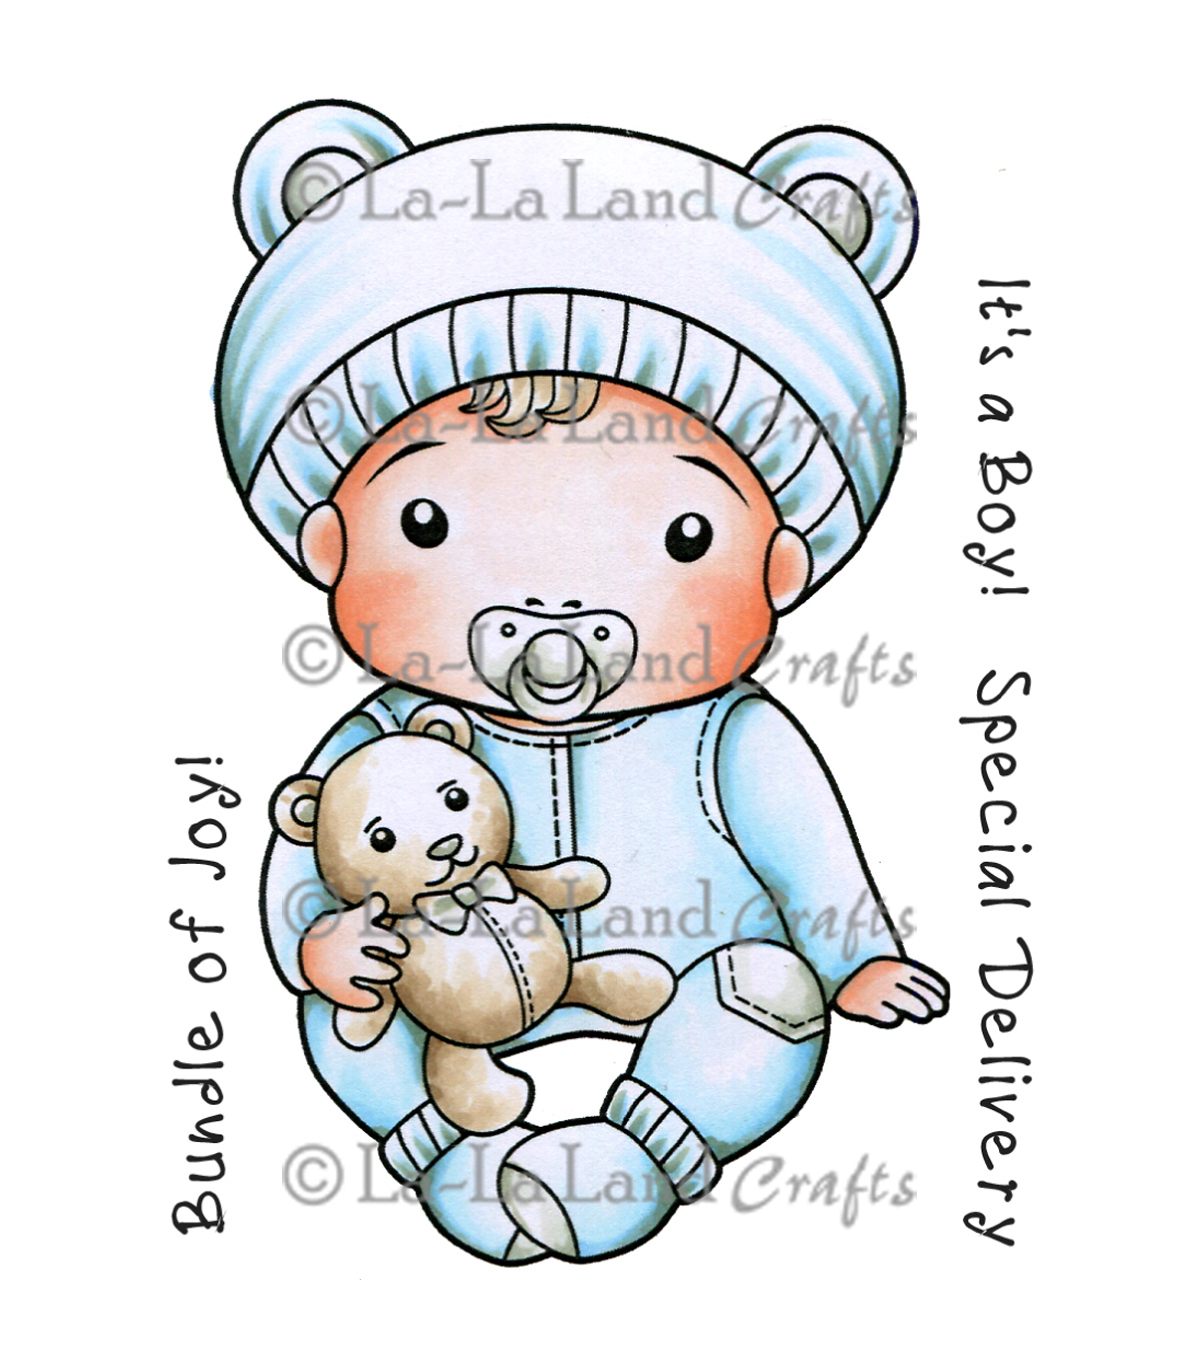 La-La Land Crafts Baby Luka Cling Mount Rubber Stamps